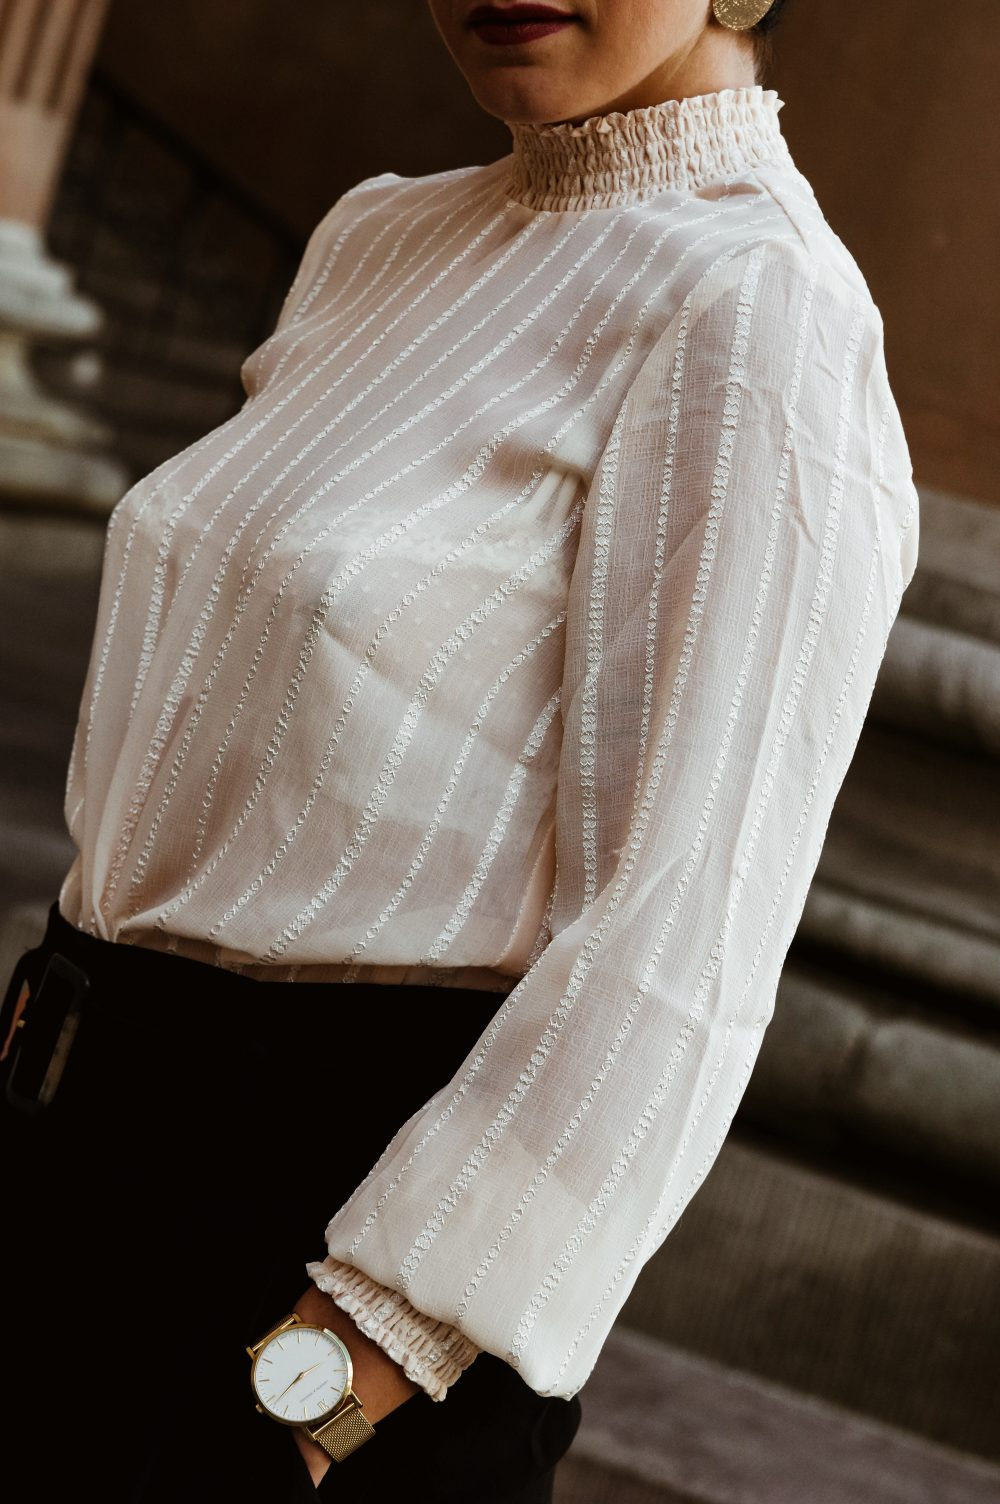 Pre-fall blouse, detailed blouse, work wear top, 2 stylish work wear outfits for pre-fall and fall 2018, fall fashion1.jpg